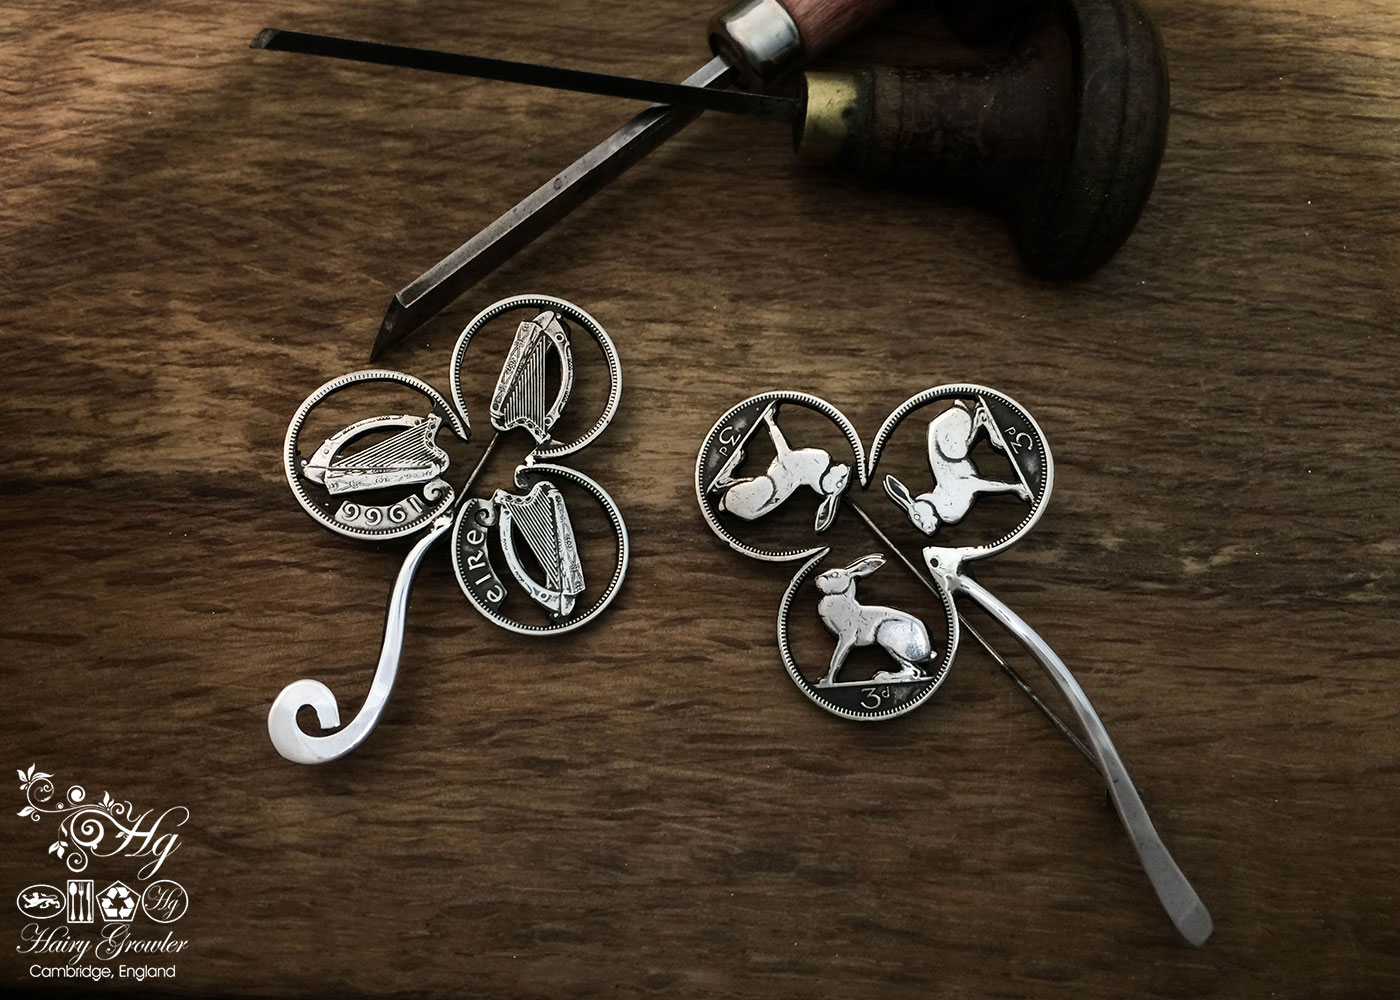 The Pennies from Heaven collection by Hairy Growler Jewellery, Cambridge, UK. Original Irish hare threepence coin triple hare brooch.